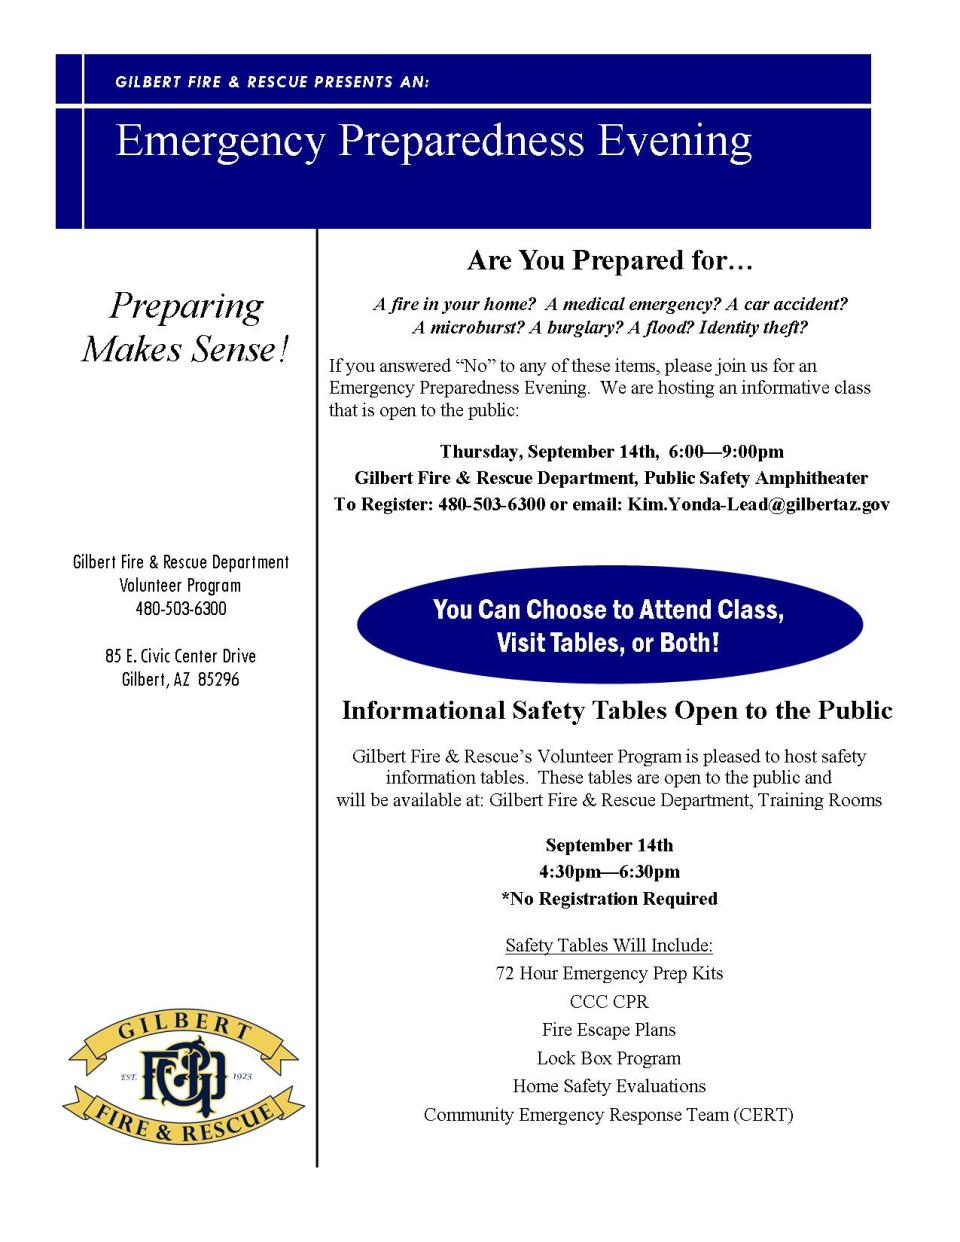 Emergency Preparedness Evening flyer